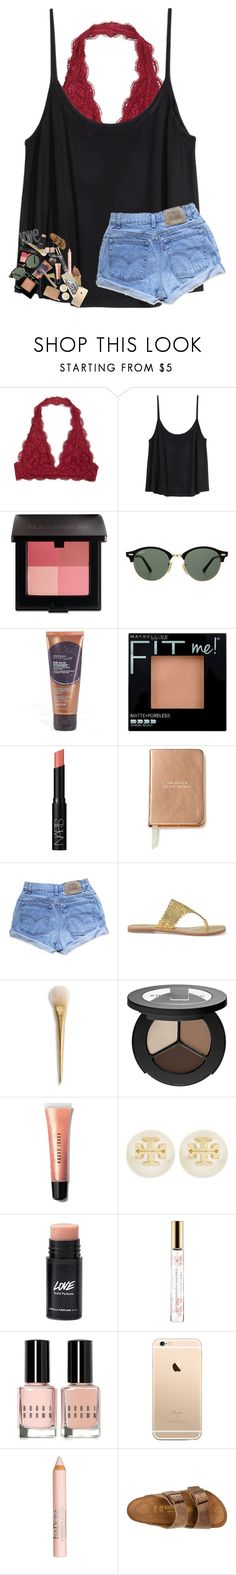 """probably gonna delete the polyvore app."" by southern-belle606 ❤ liked on Polyvore featuring H&M, Laura Mercier, Ray-Ban, Maybelline, NARS Cosmetics, Kate Spade, Levi's, Tory Burch, Smashbox and Bobbi Brown Cosmetics"